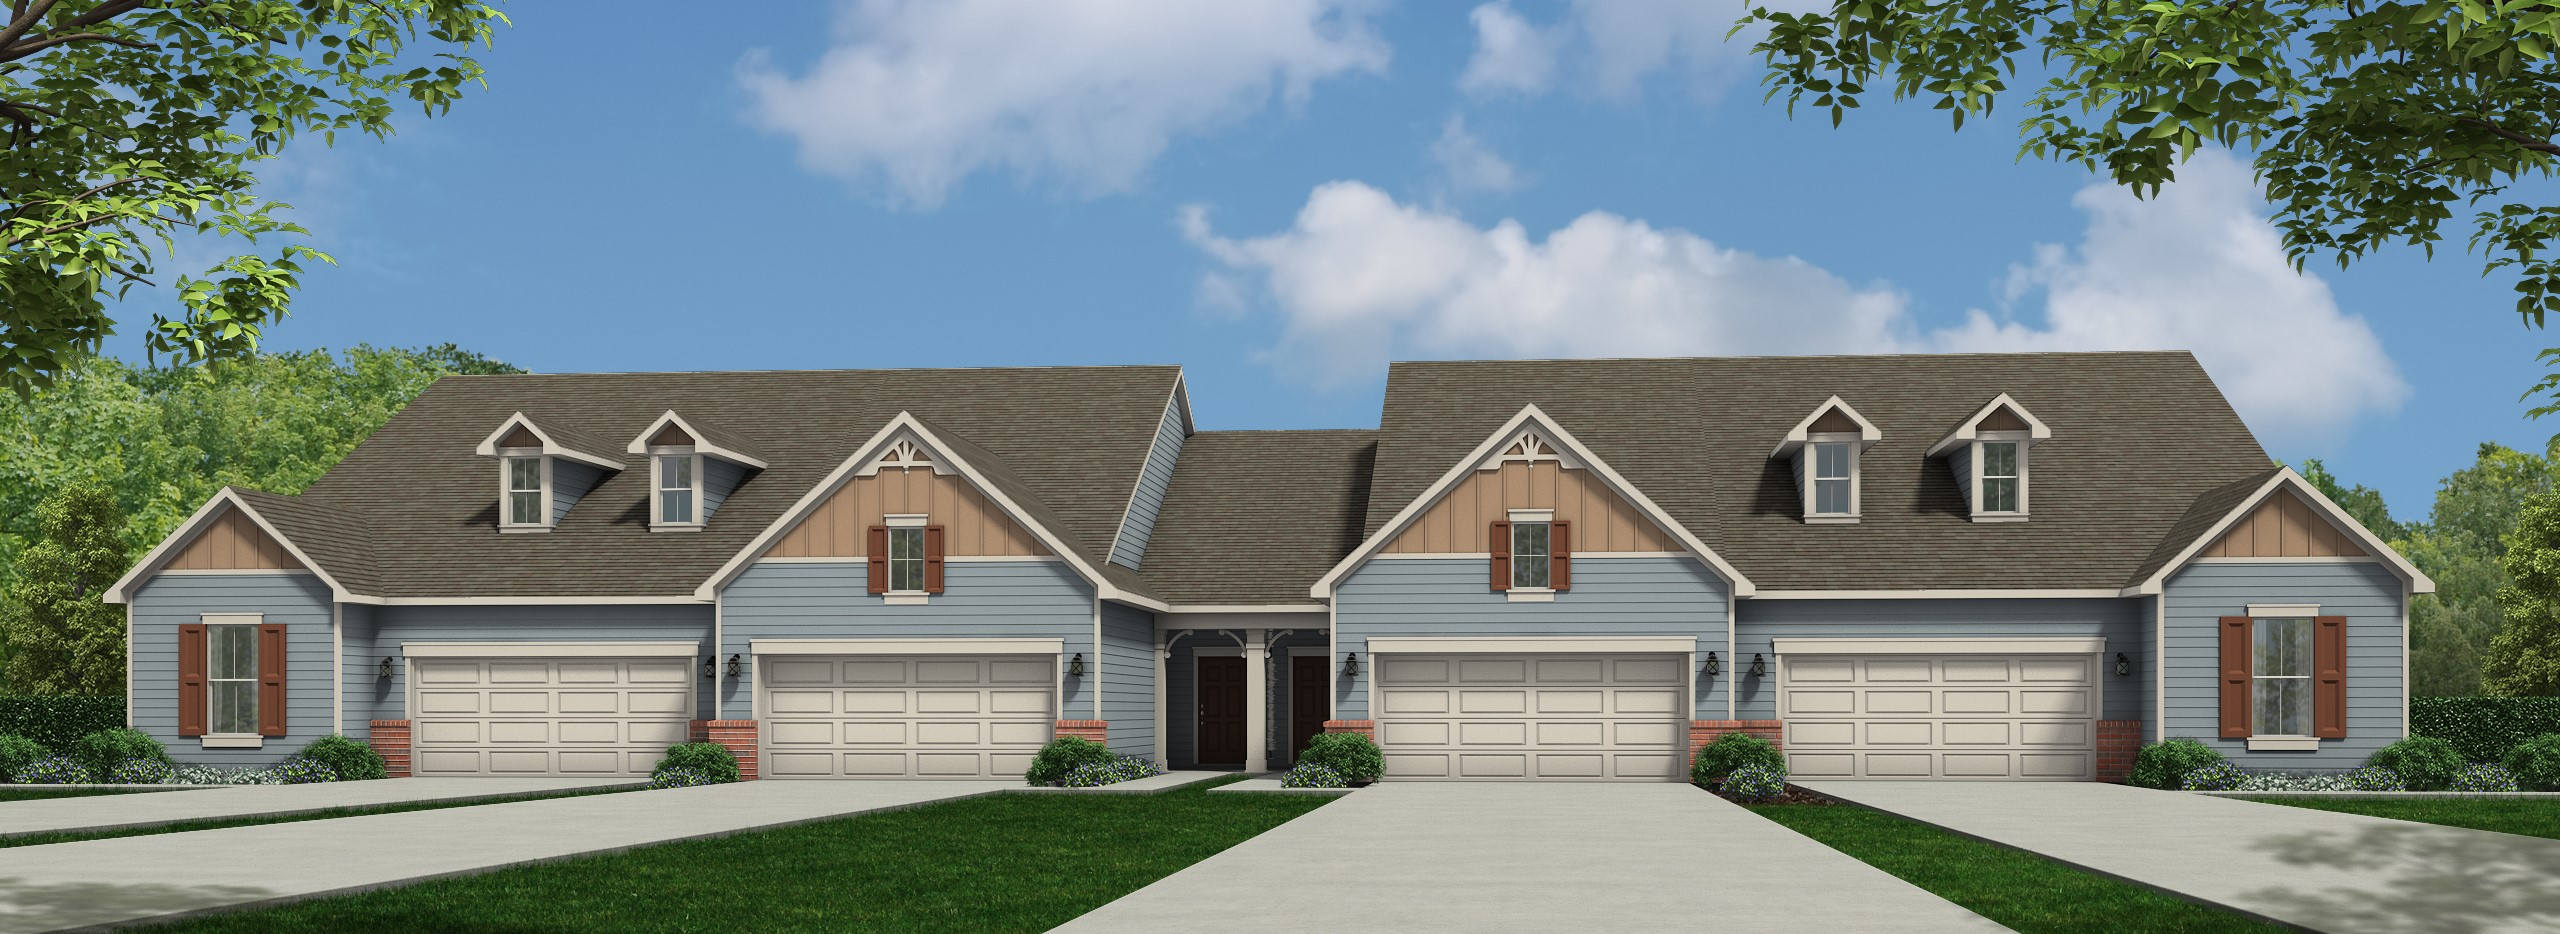 Av Homes Offers Ranch Style Townhomes In Raleigh Builder